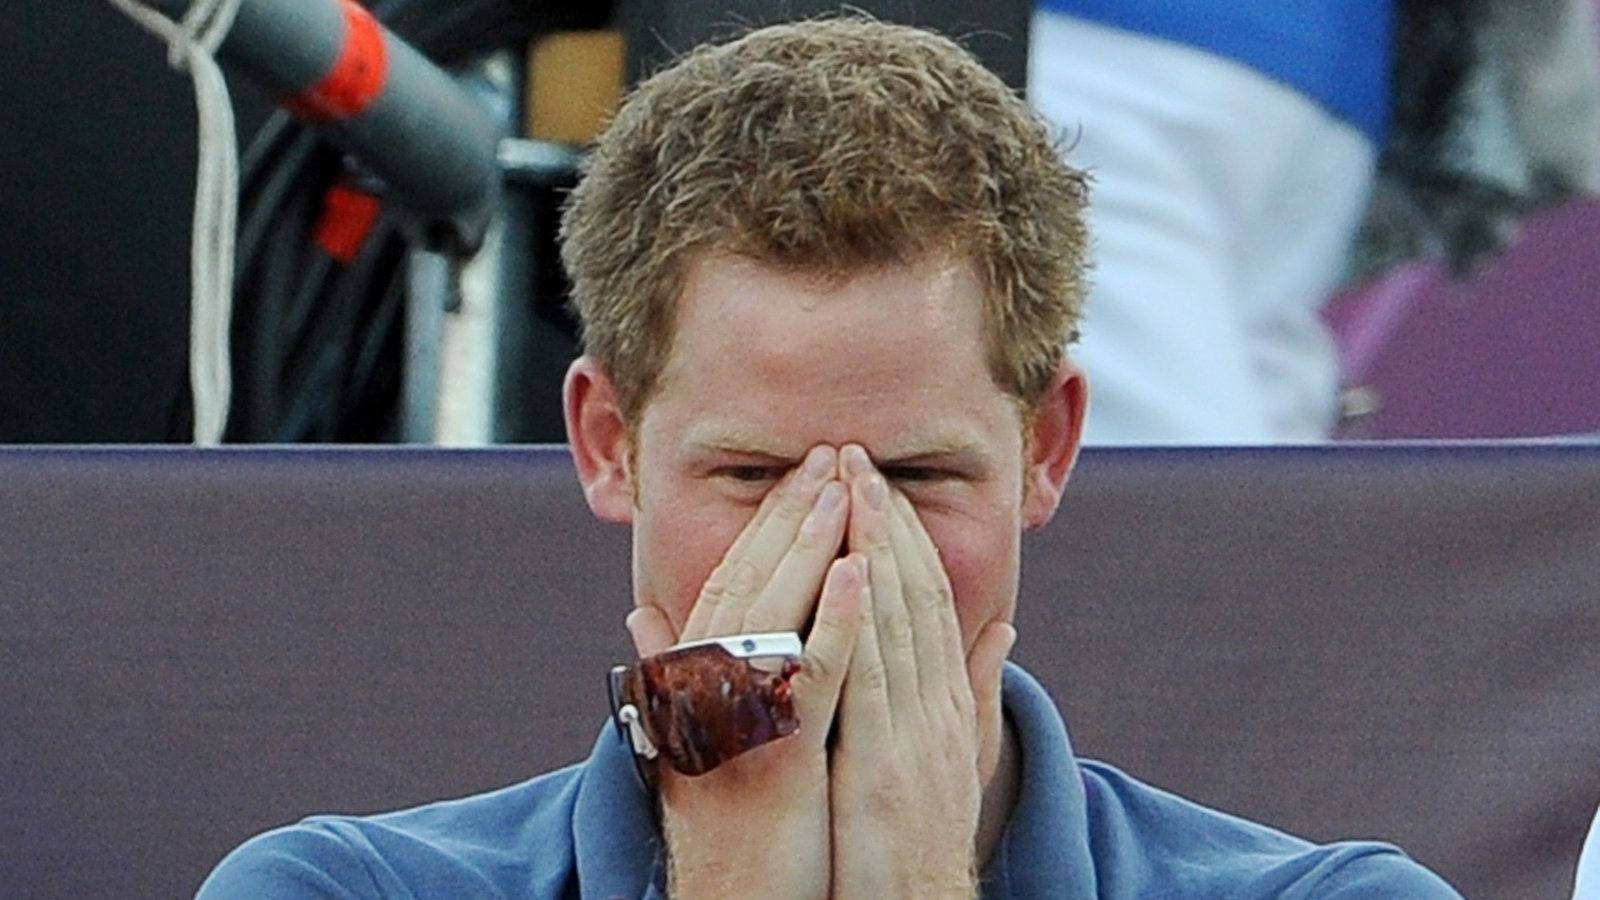 Prince Harry naked in Vegas pictures published online and